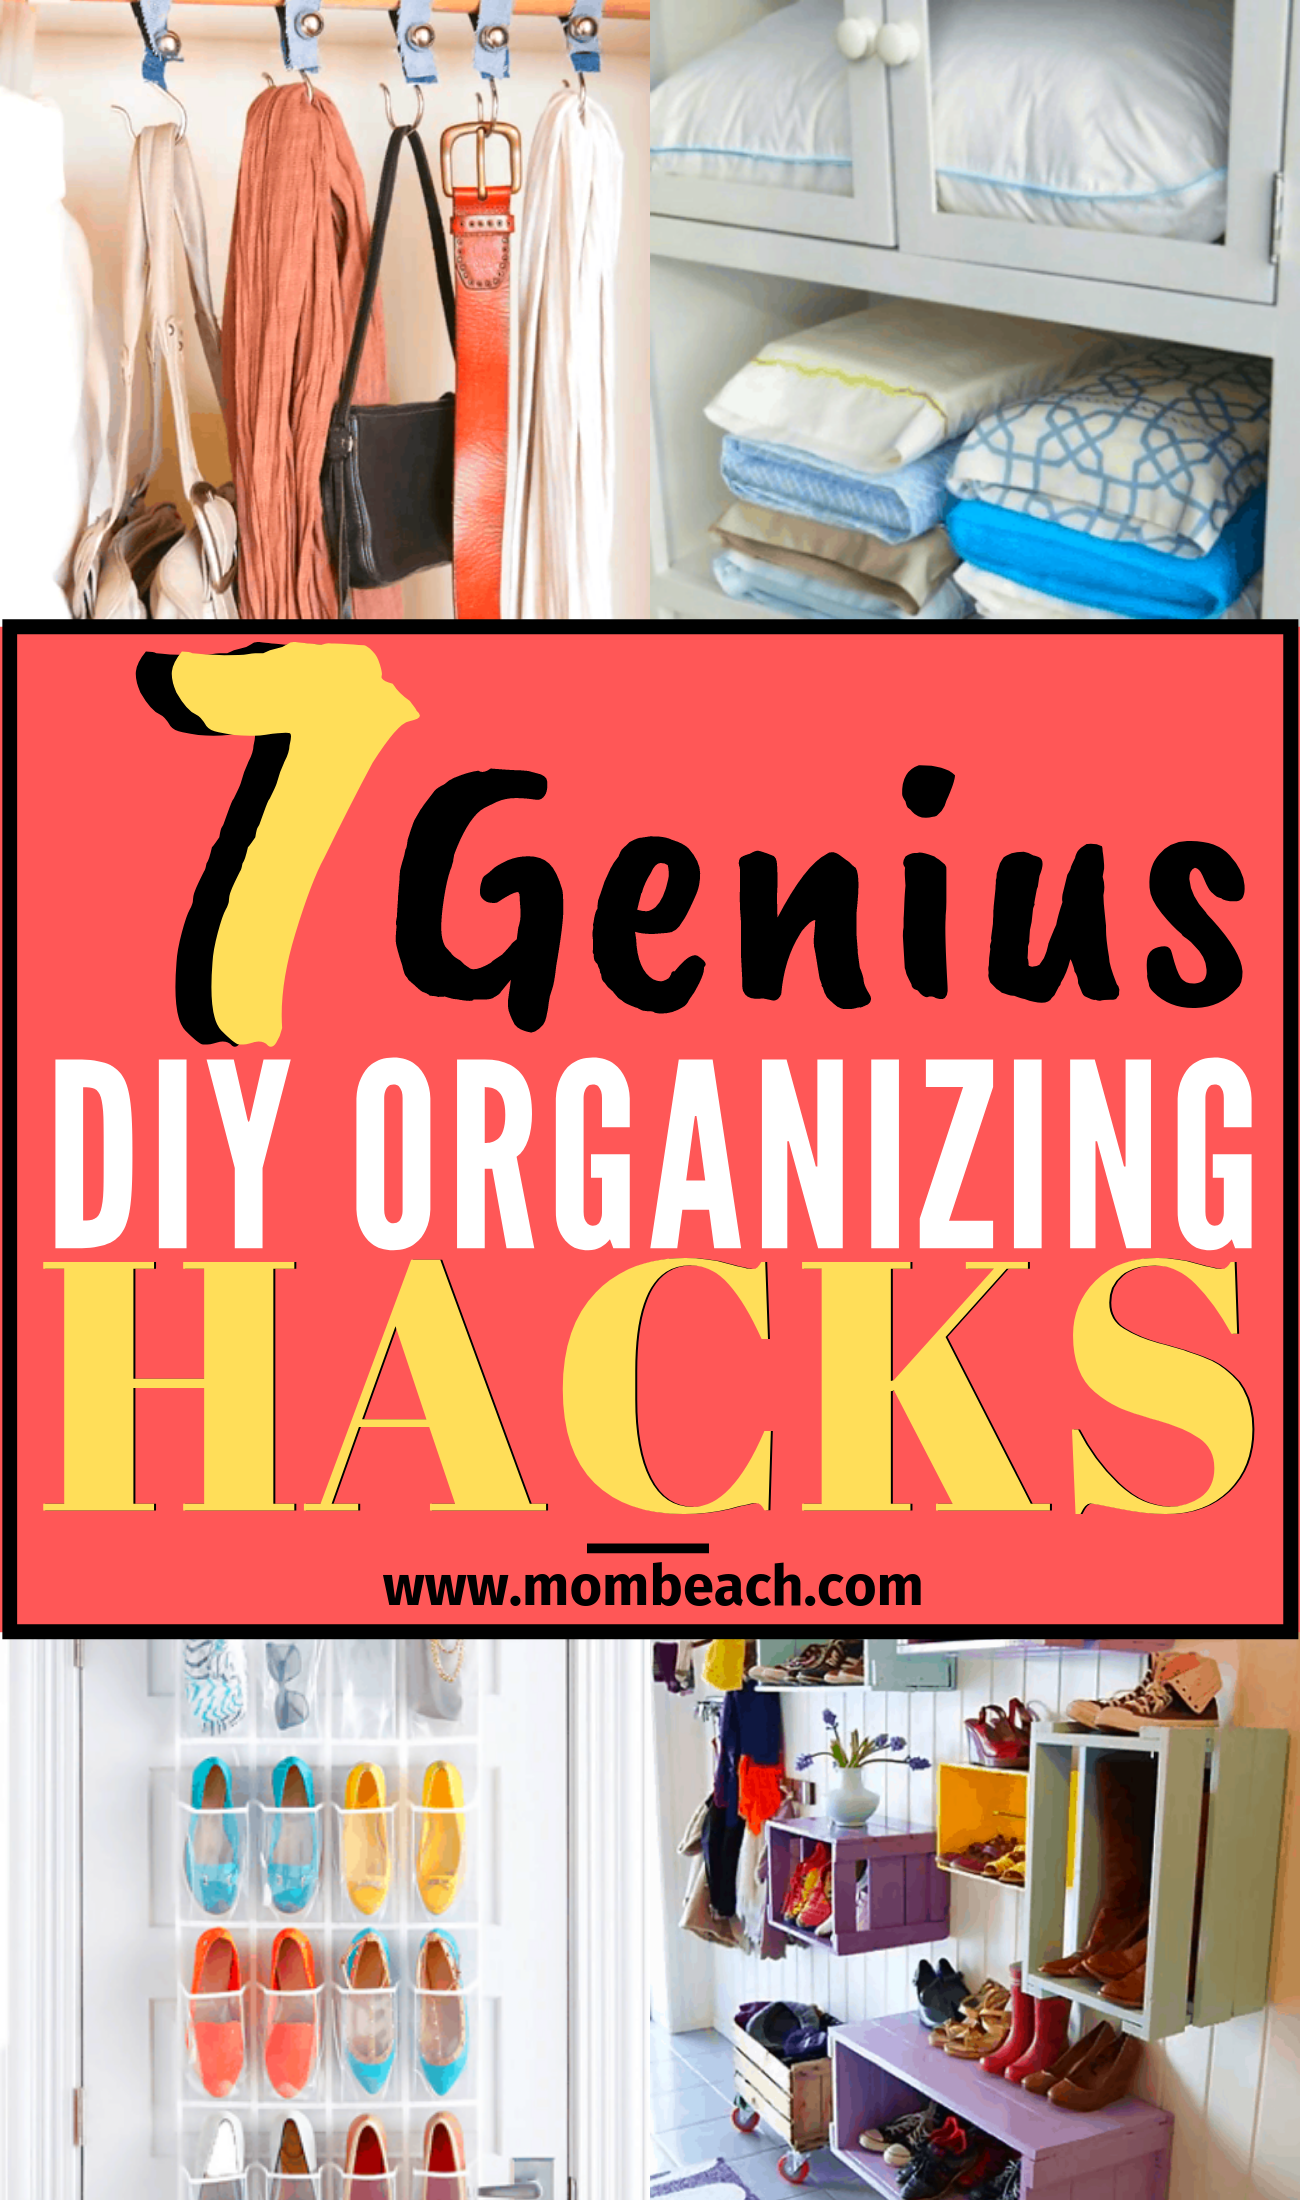 Get organized now and DIY too. Save money by DIY instead of spend hundreds at the Container Store. There are so many dollar store organization ideas that you will be shook! There are DIY organization ideas for the bedroom, for small spaces, for teens, bathrooms, the kitchen and the closet. There are even hacks for the apartment too. #diyorganization #diyorganizationideas #diyorganizationhacks #diyorganizationforsmallspaces #diyorganizationdollarstore